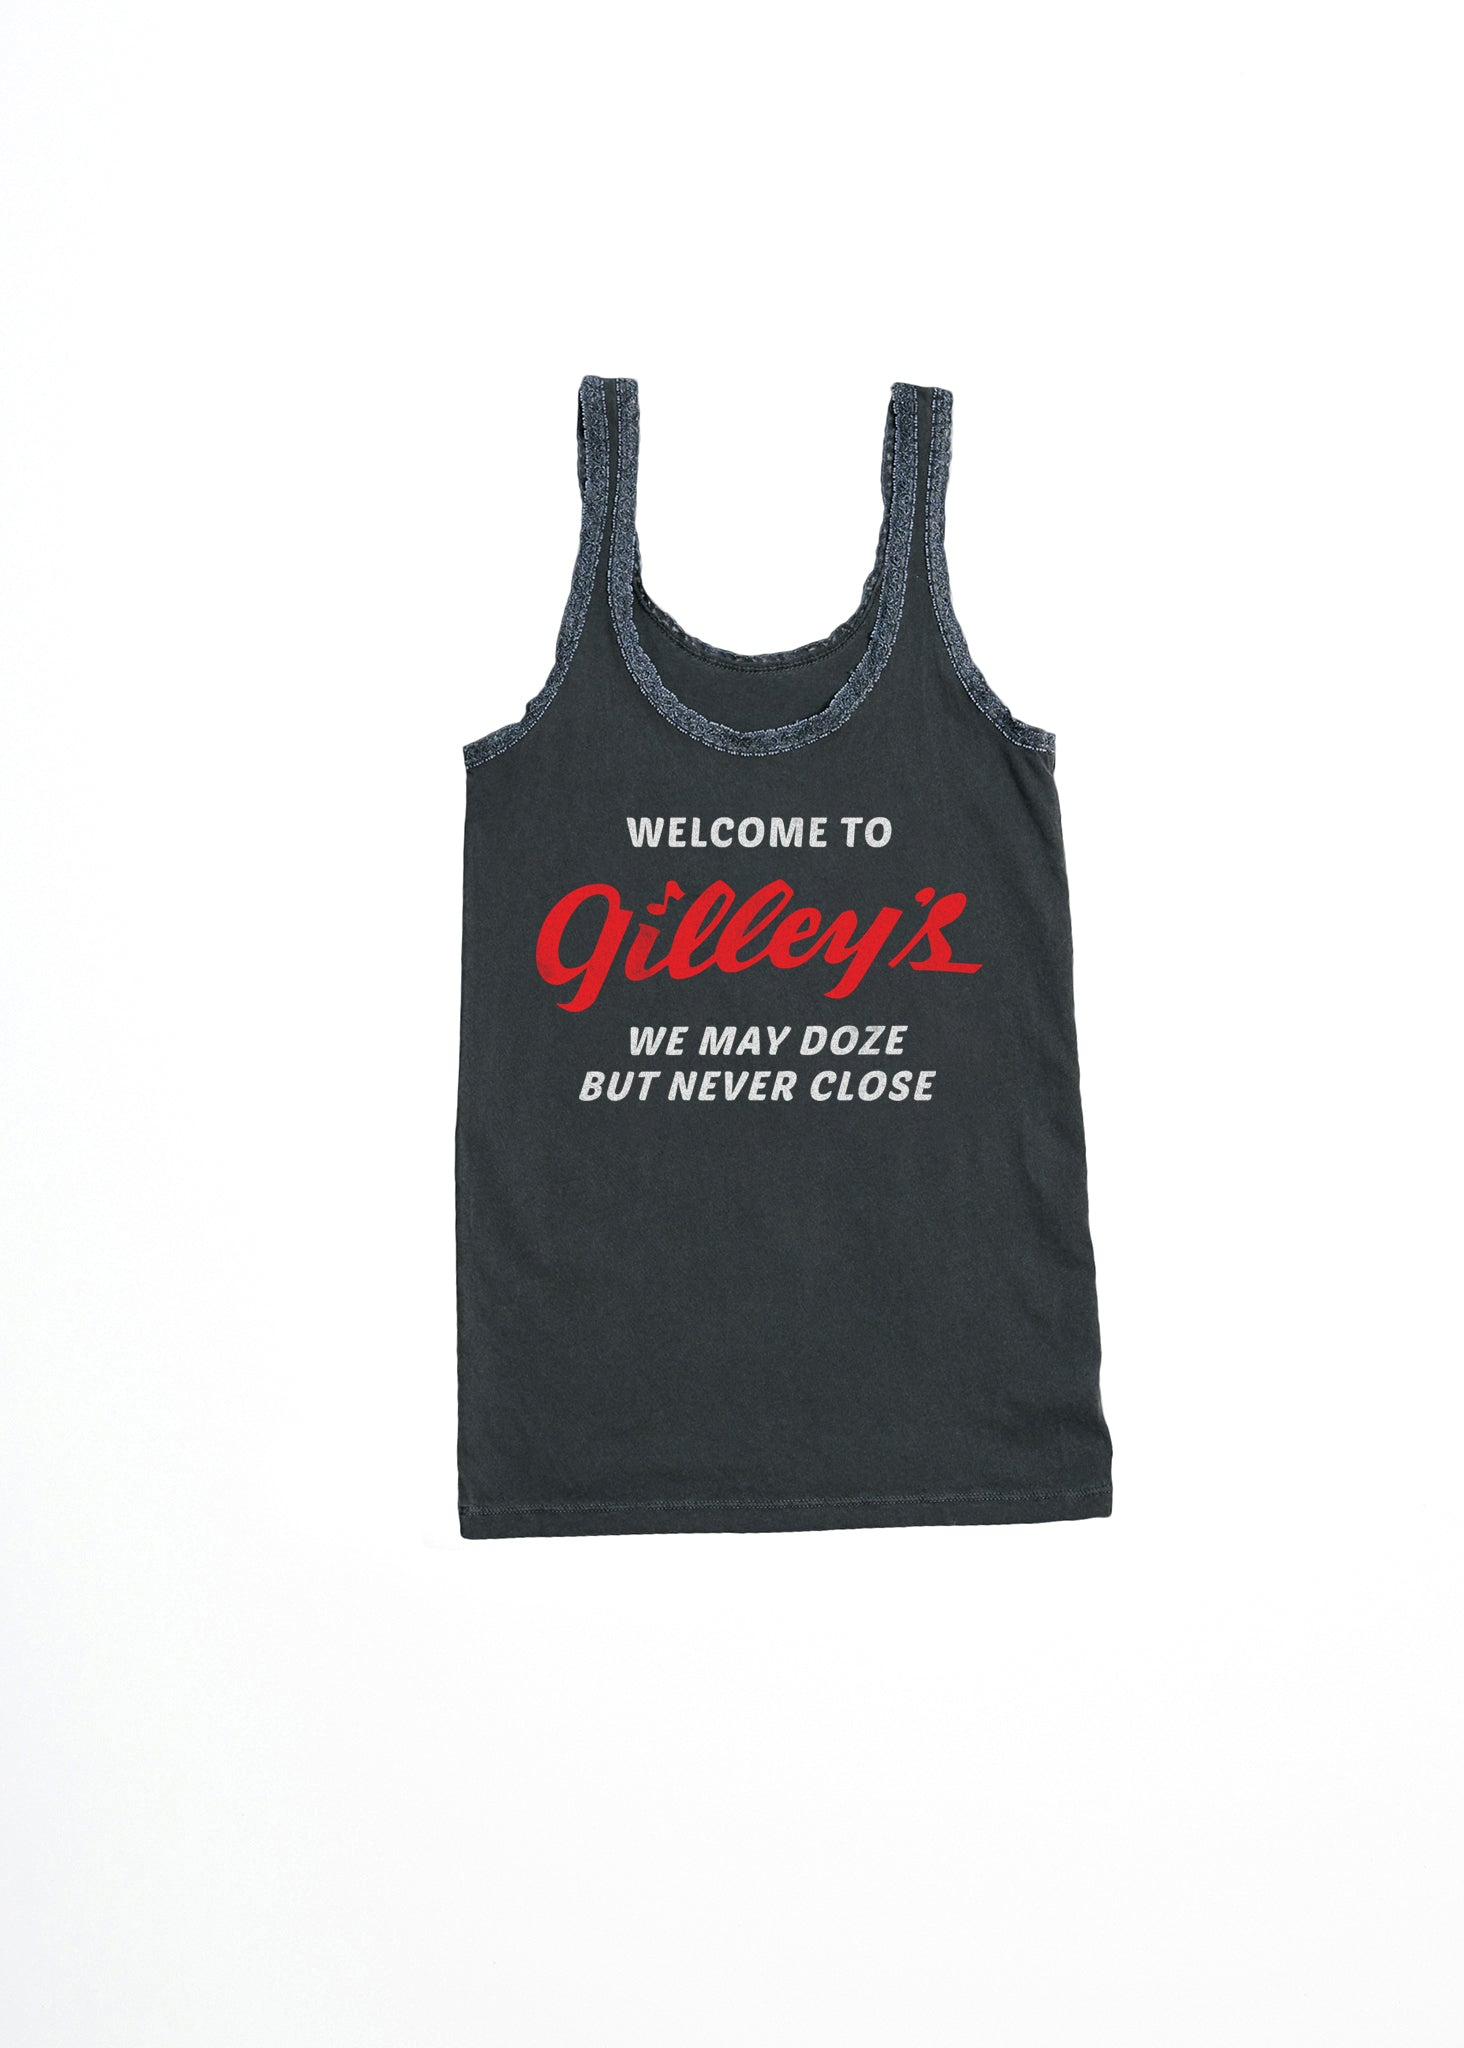 GILLEY'S NEVER CLOSE LACE TANK - VINTAGE BLACK - Women's Tee Shirt - Midnight Rider